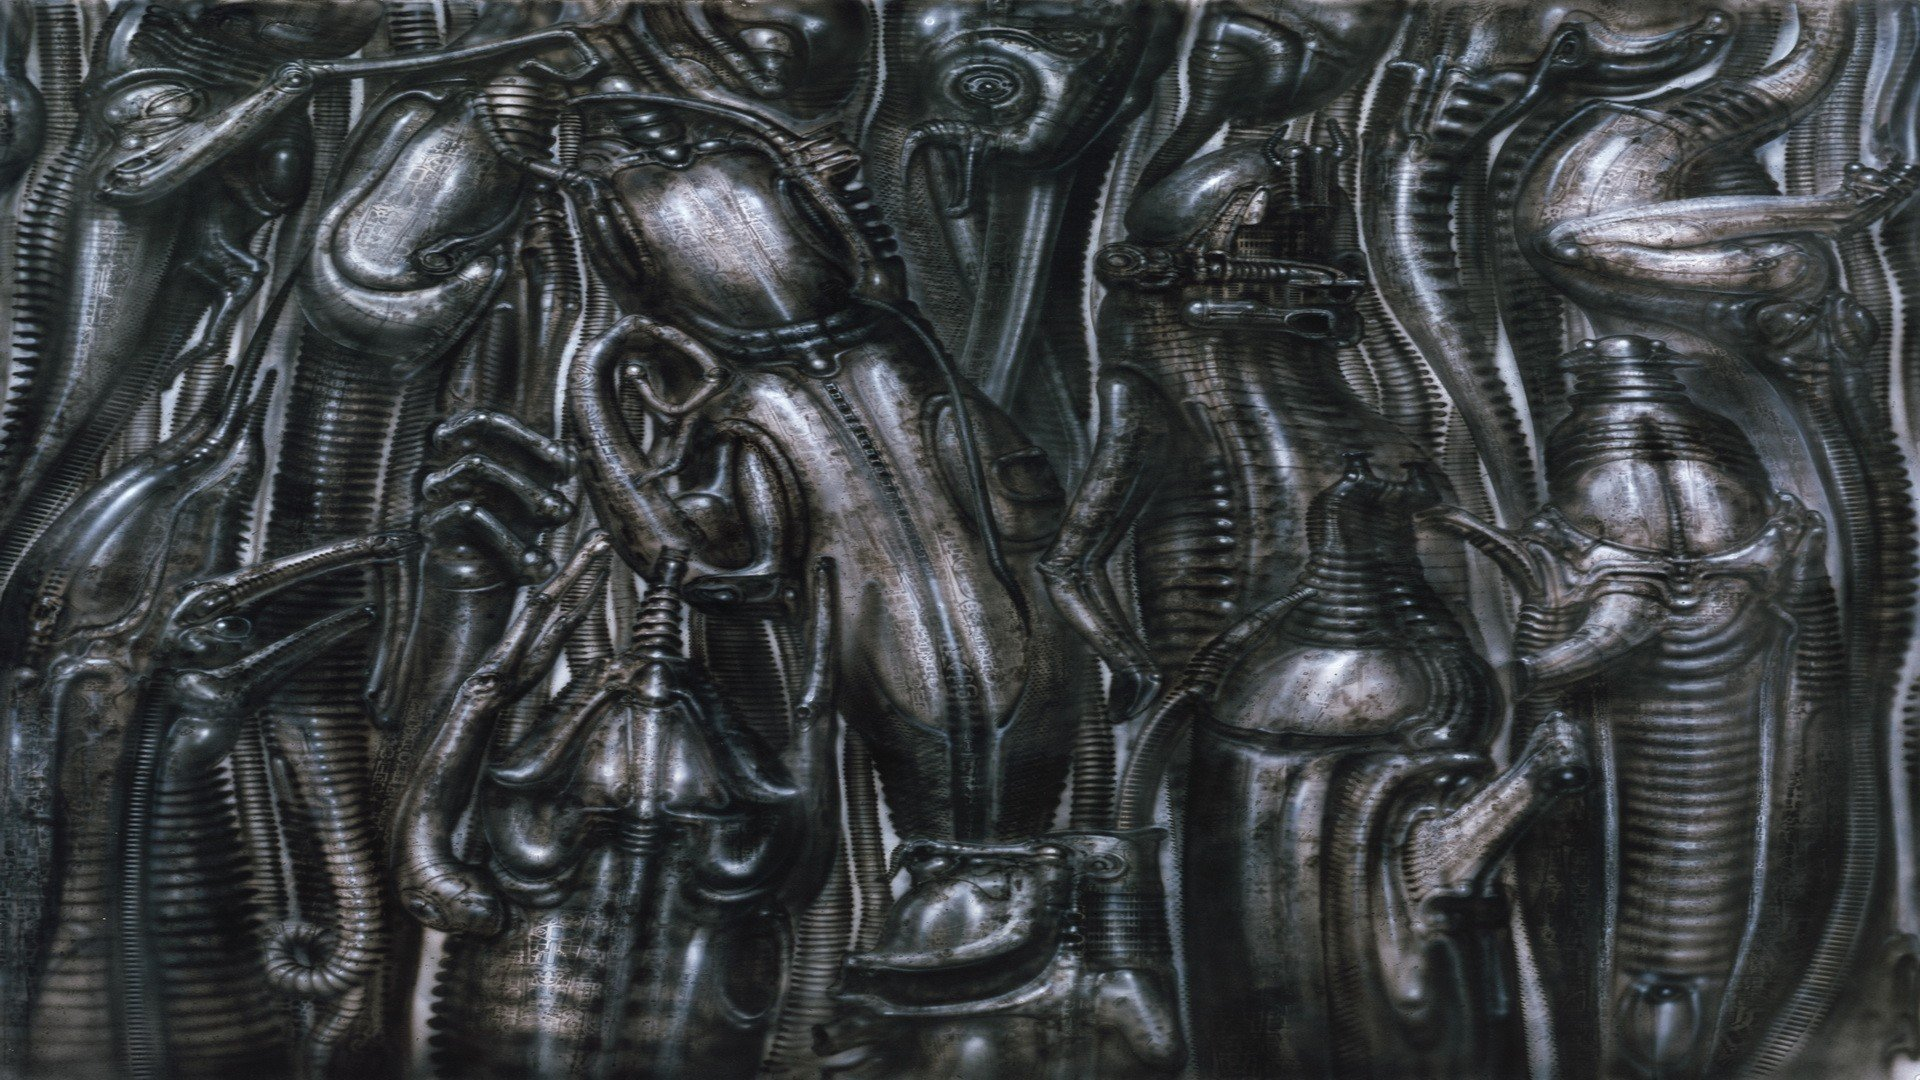 H. R. Giger Wallpaper